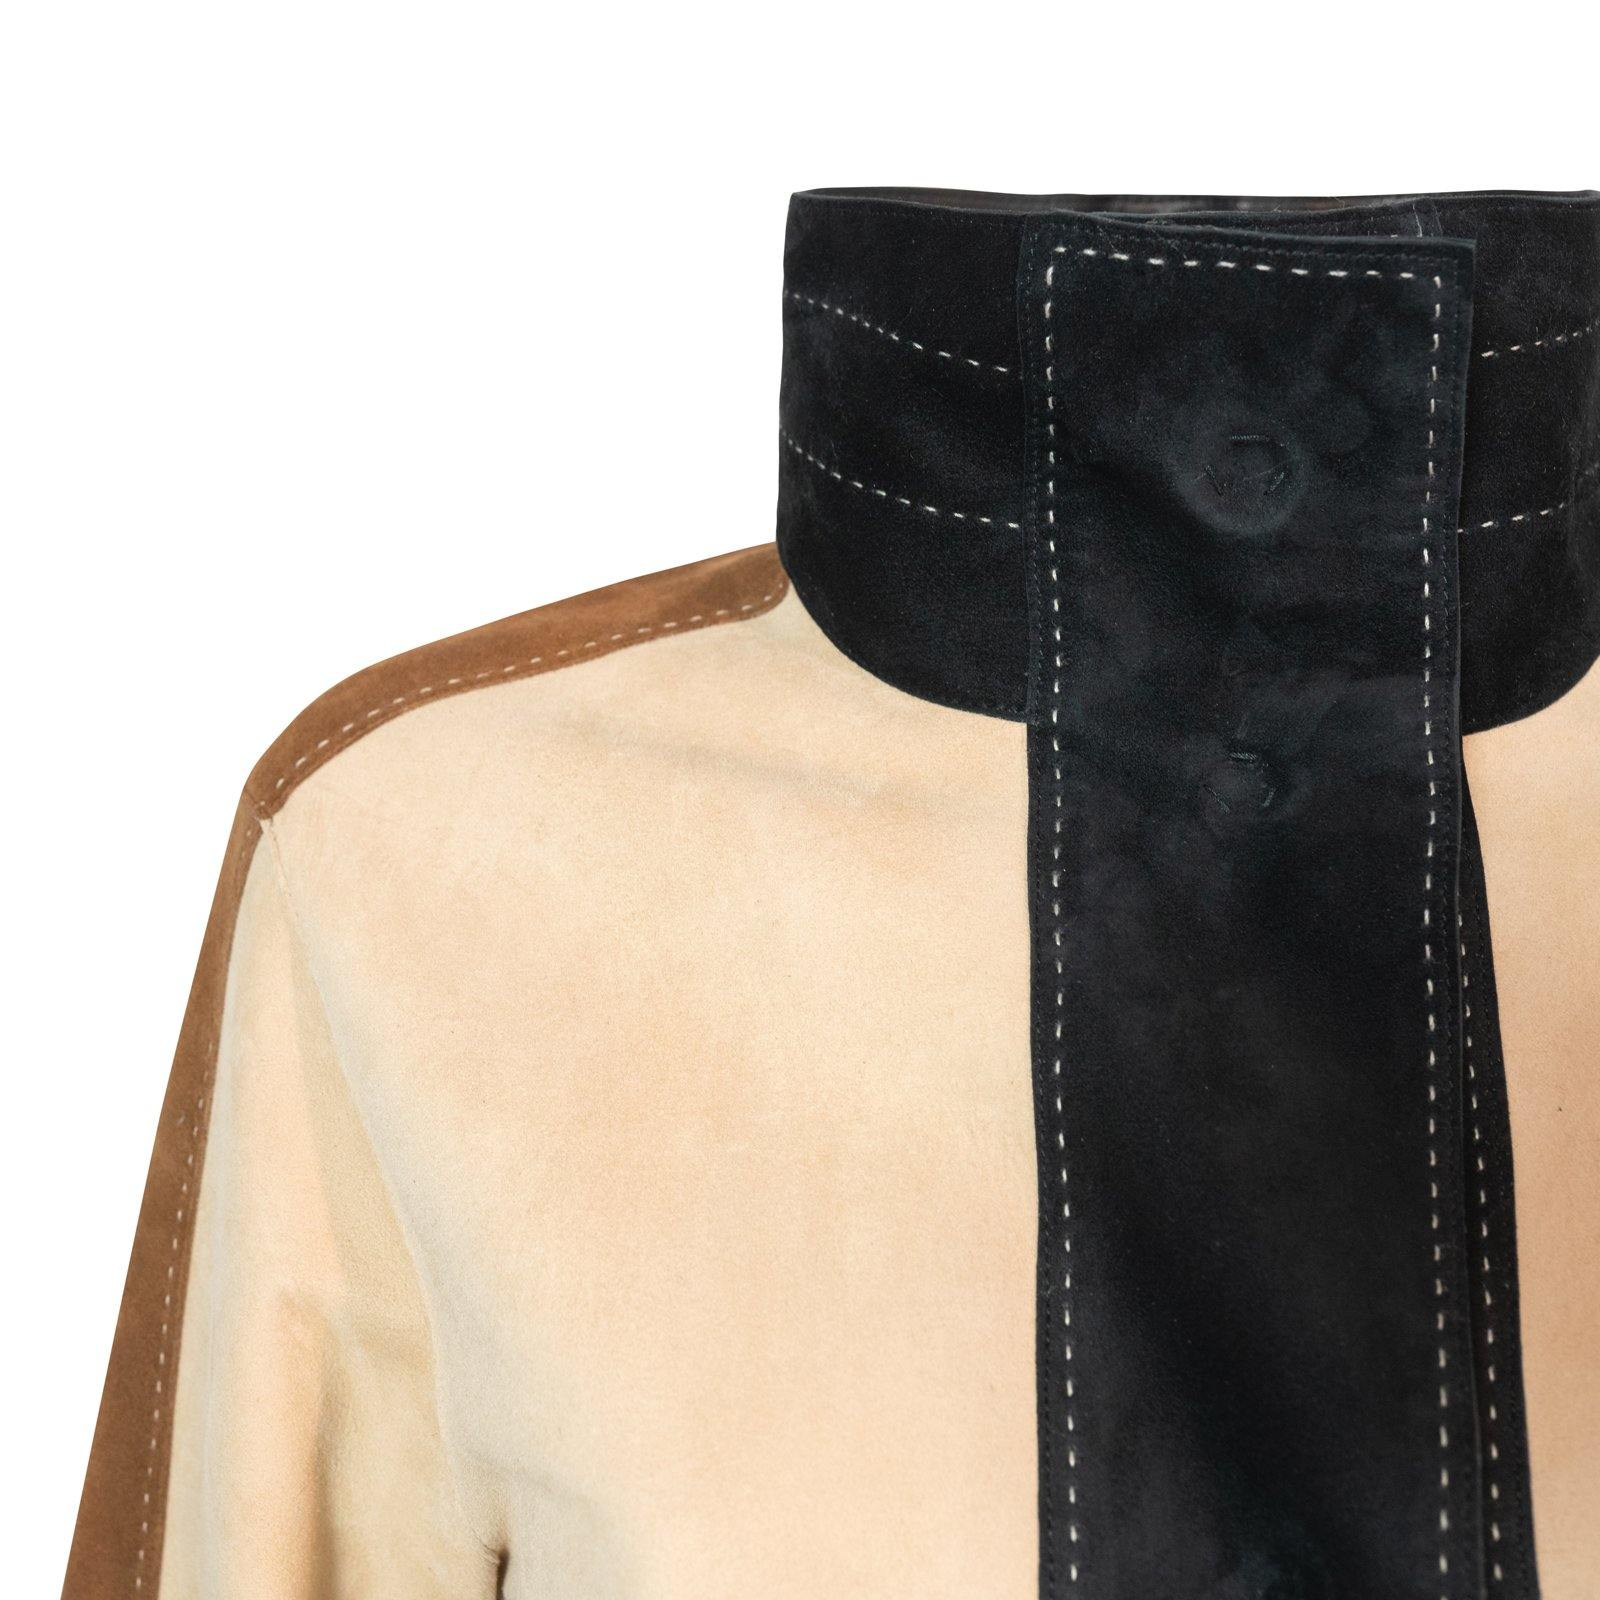 AURORA Reversible Leather Jacket in Black, Nude and Nocciola